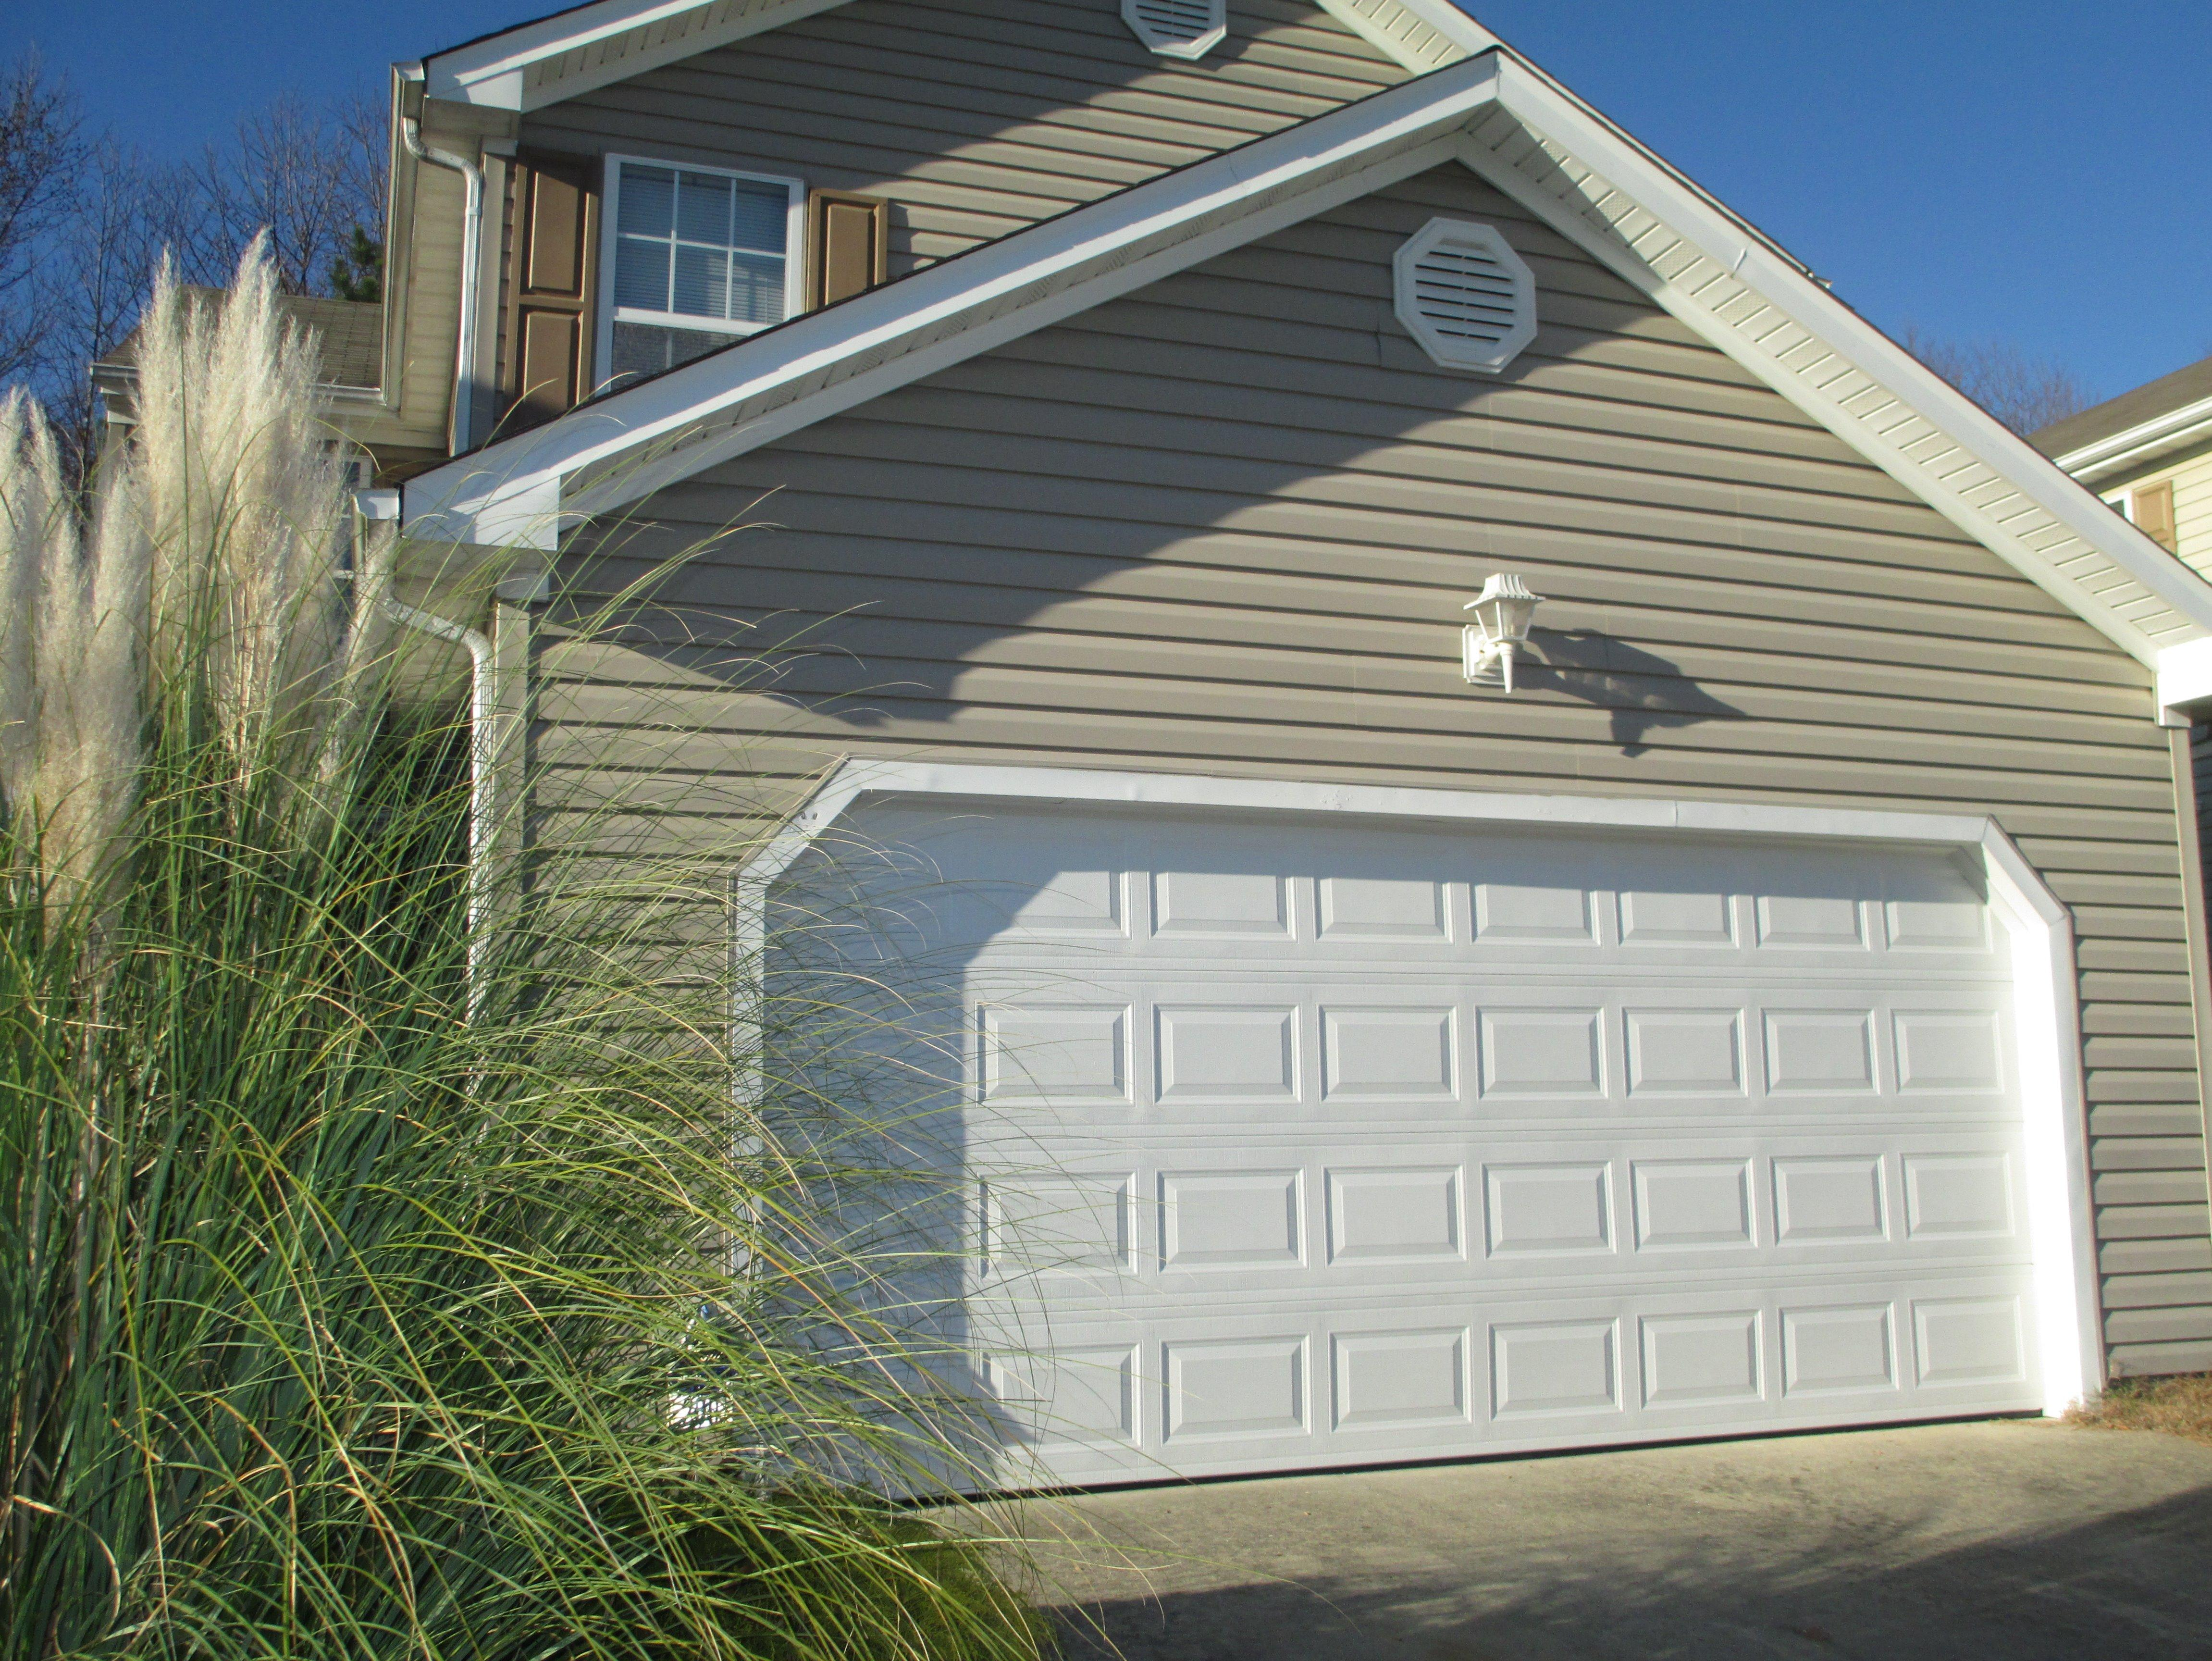 J Amp S Overhead Garage Door Service In Chesapeake Va 23322